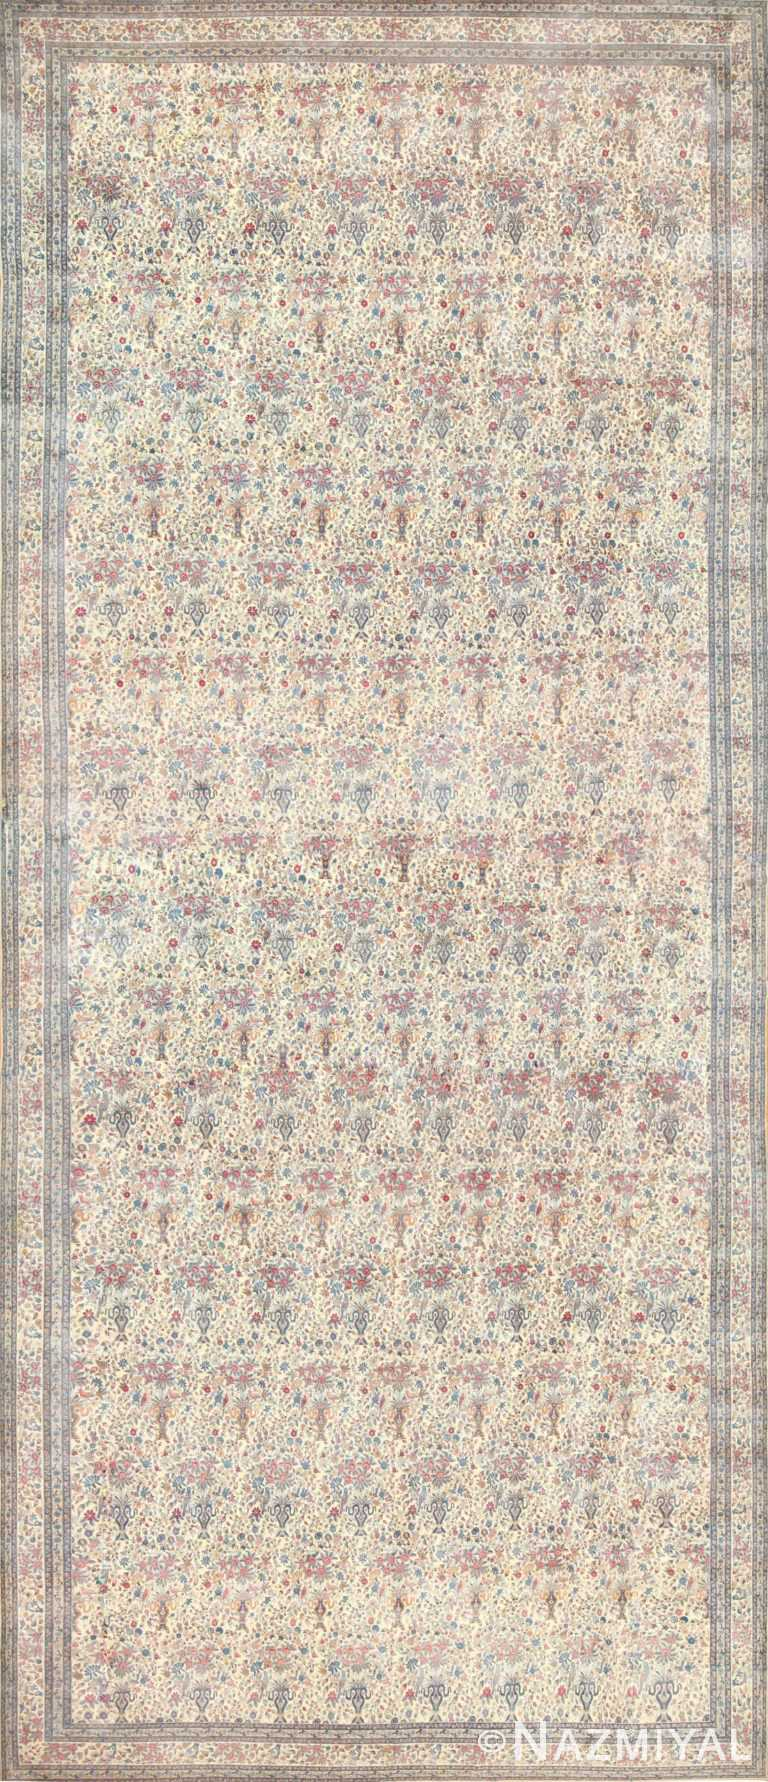 Oversized Antique Persian Kerman Rug 48370 Nazmiyal